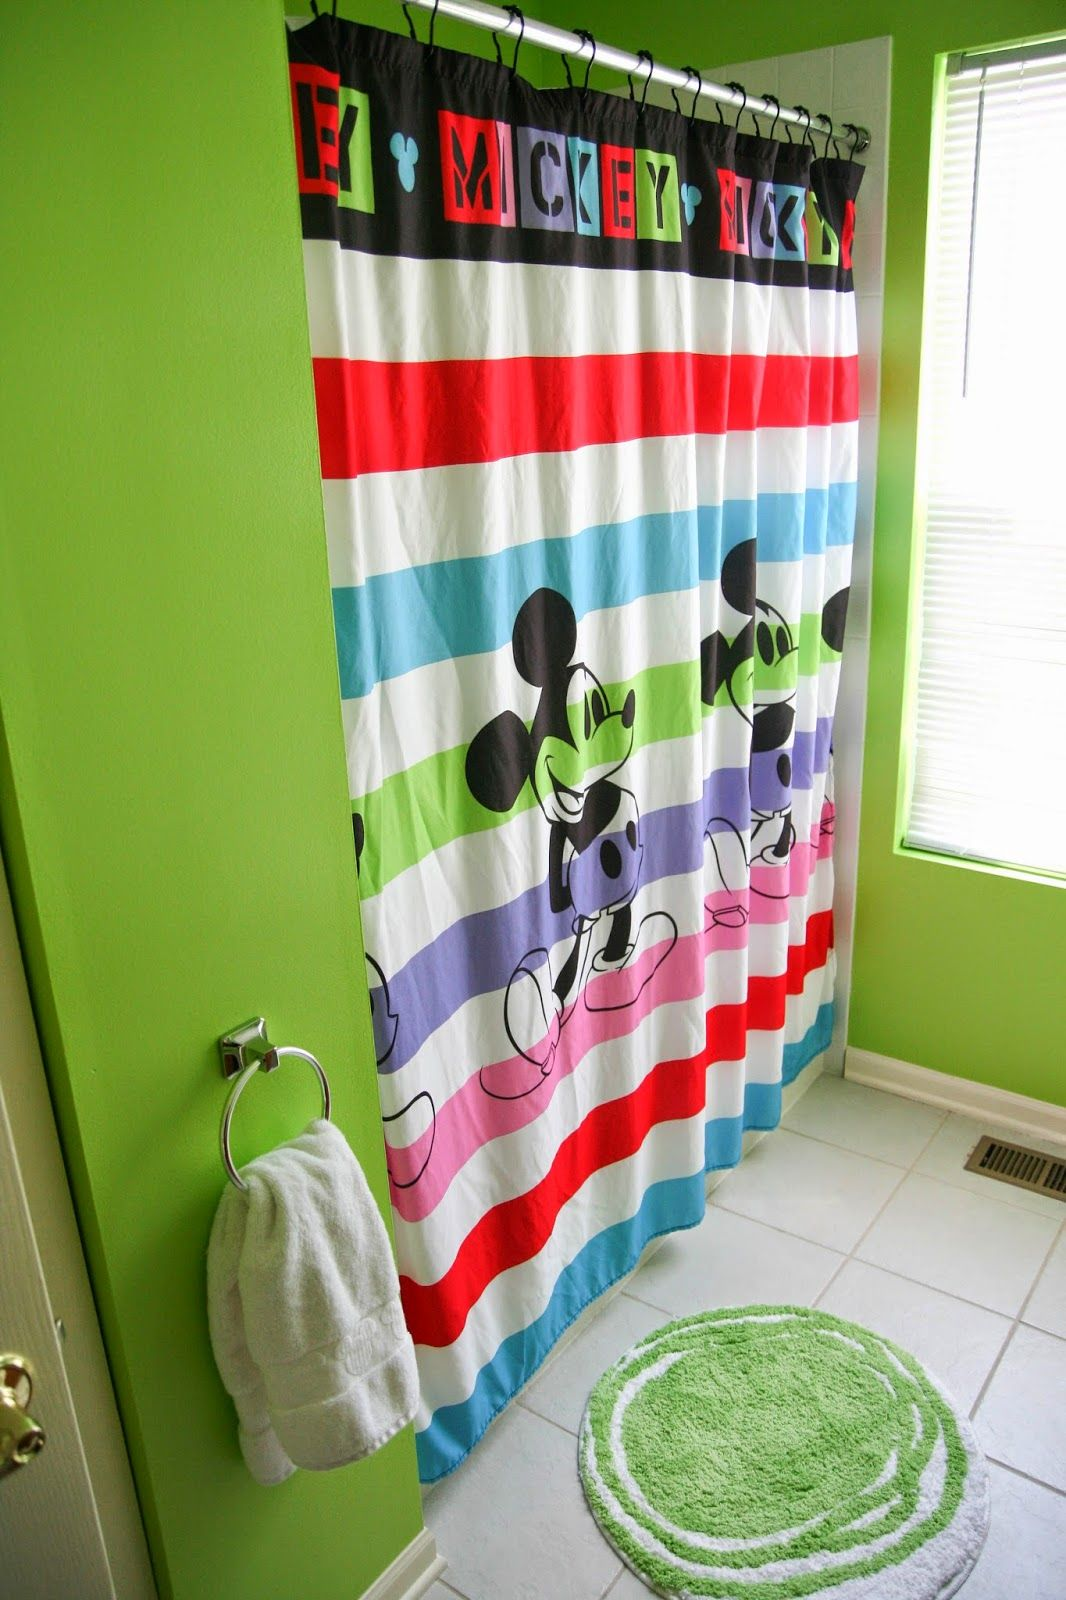 Mickey Mouse Pop Bathroom Mickey Mouse Bathroom Minnie Mouse Bathroom Decor Disney Bathroom